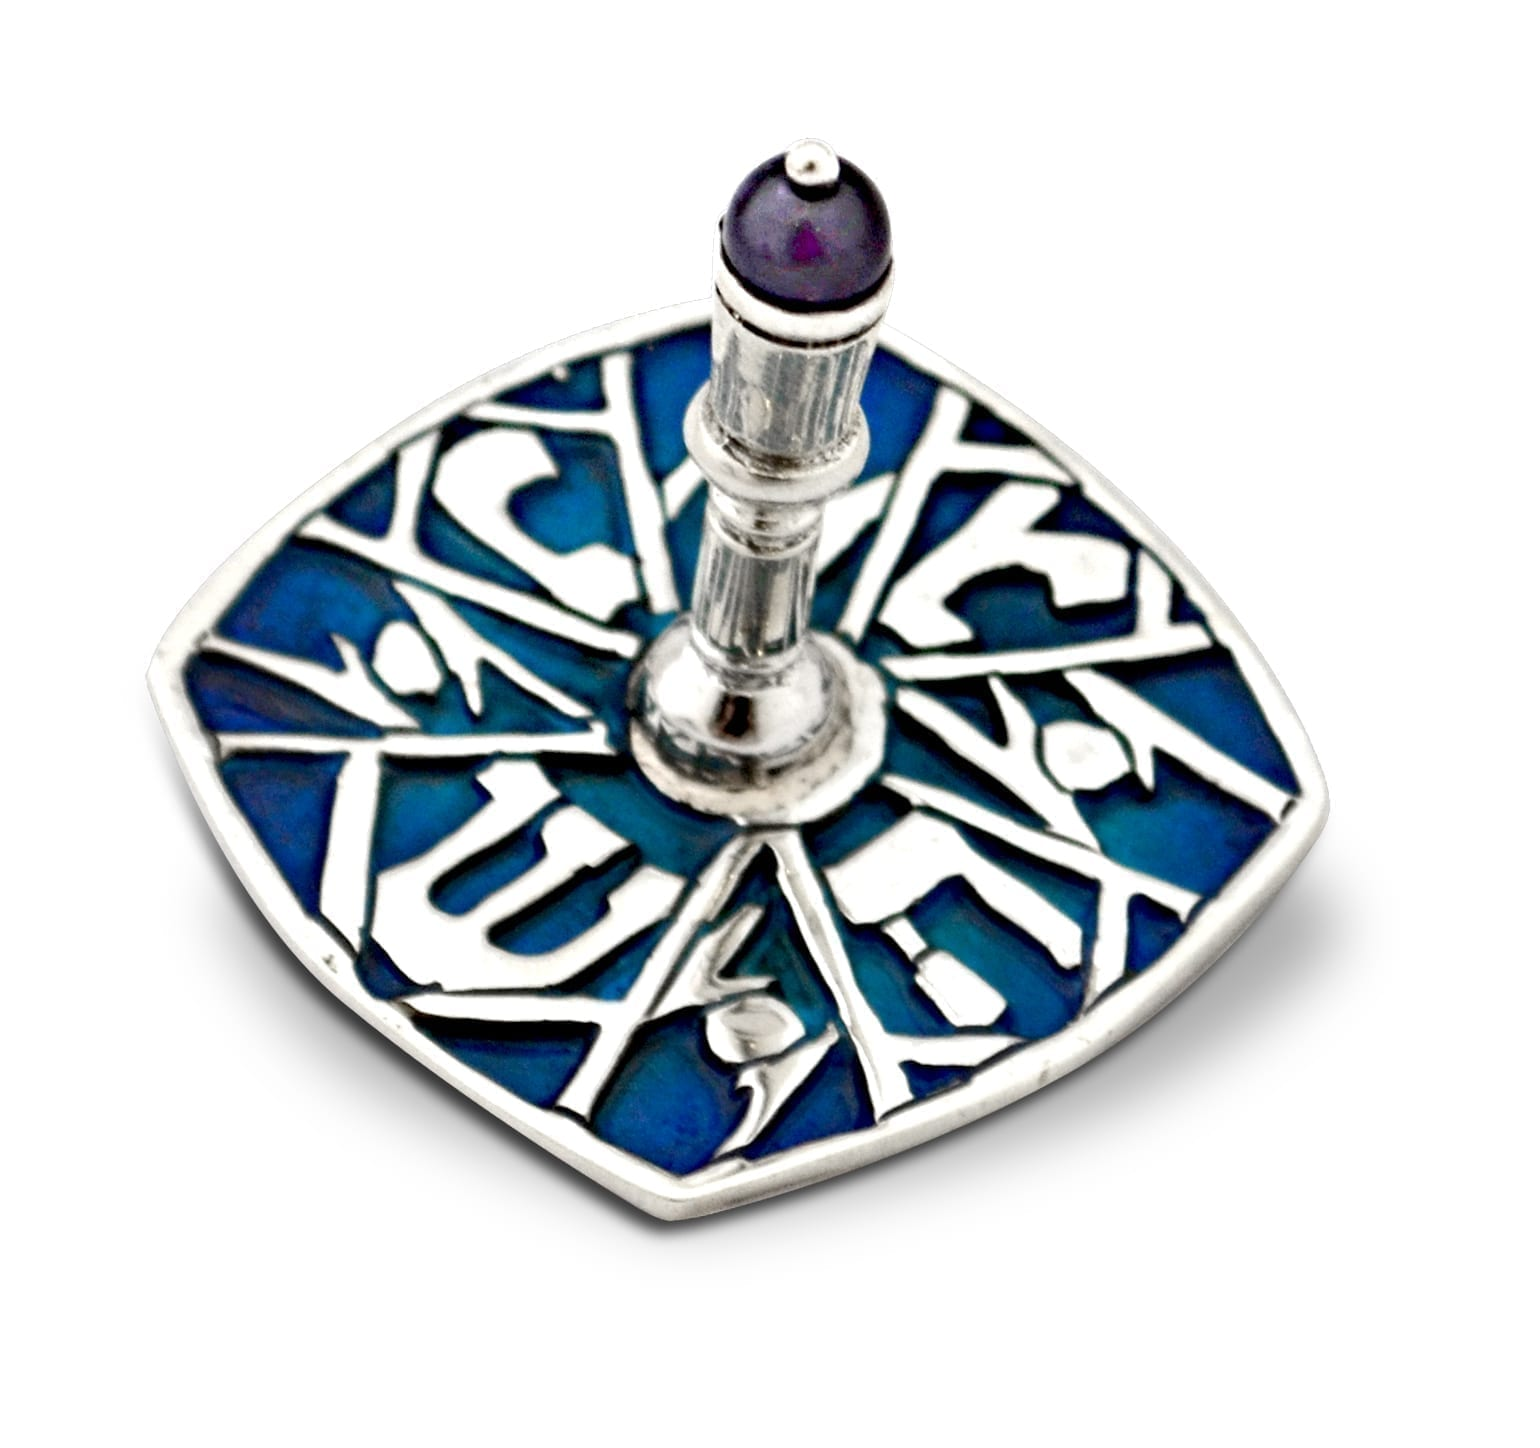 Sterling silver dreidel with colorful enamel and a semi-precious orb. Hannukah Judaica gifts made in Israel